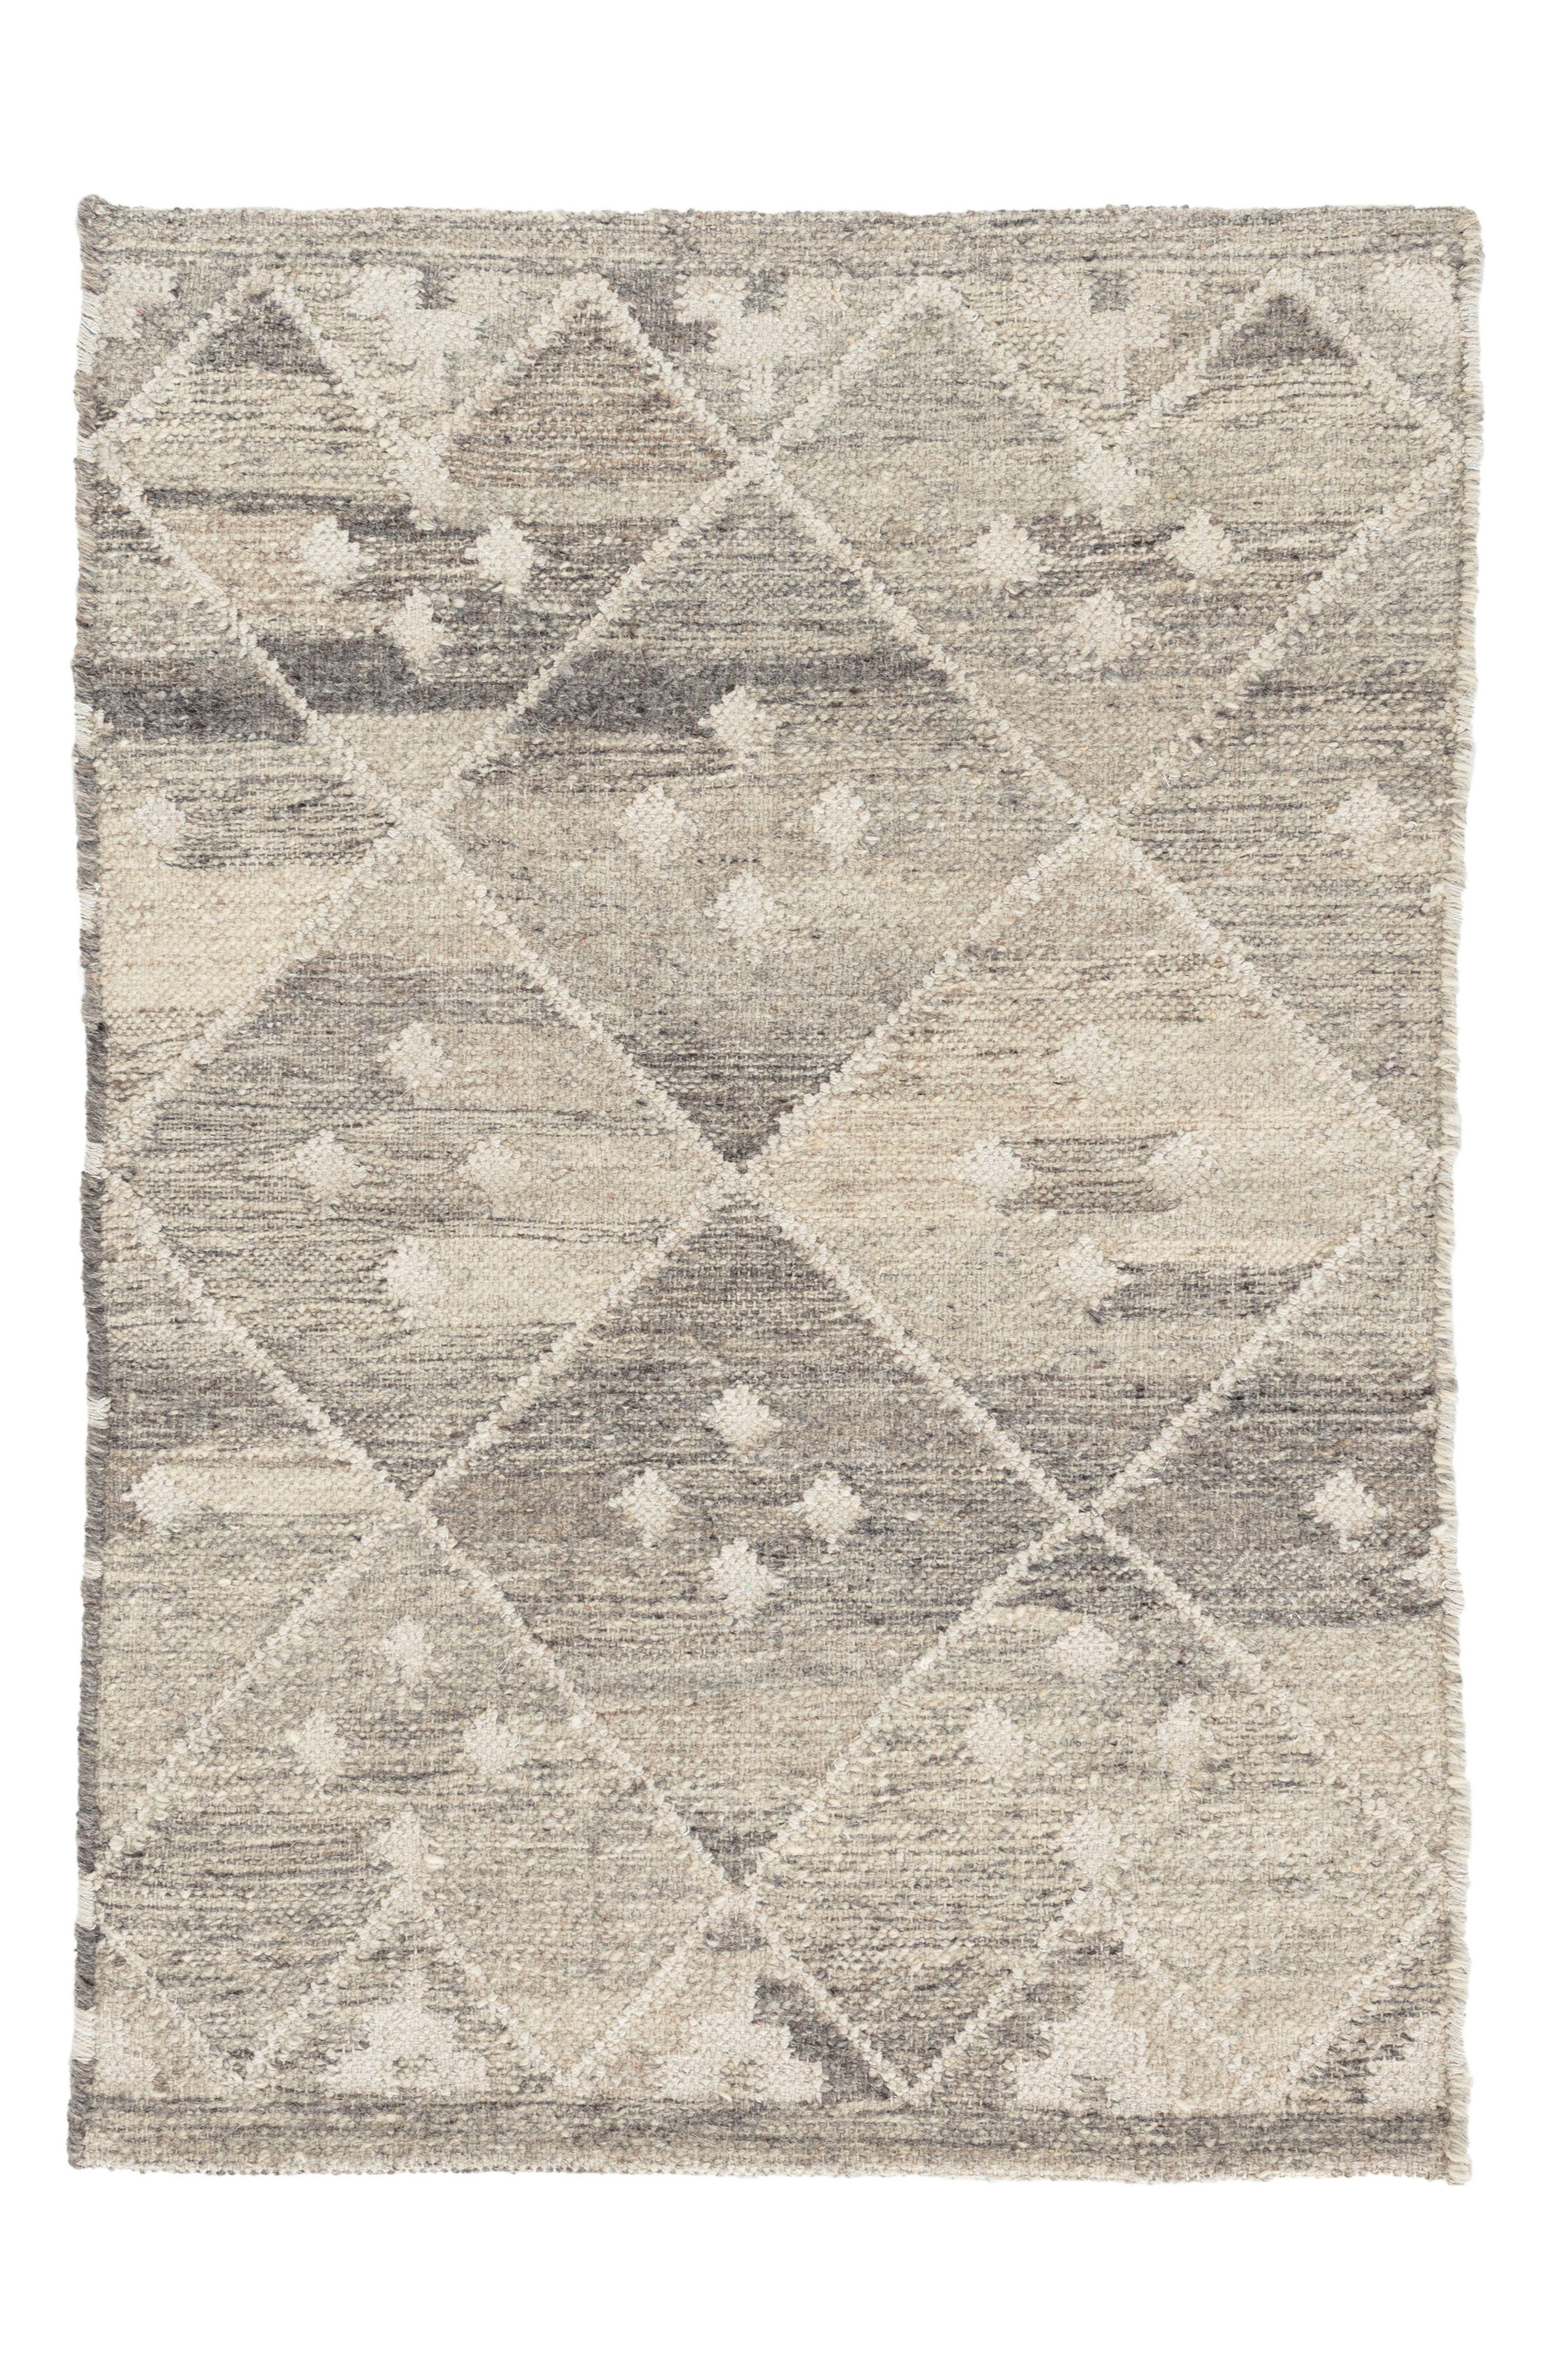 Kota Woven Wool & Cotton Rug,                         Main,                         color, Neutral